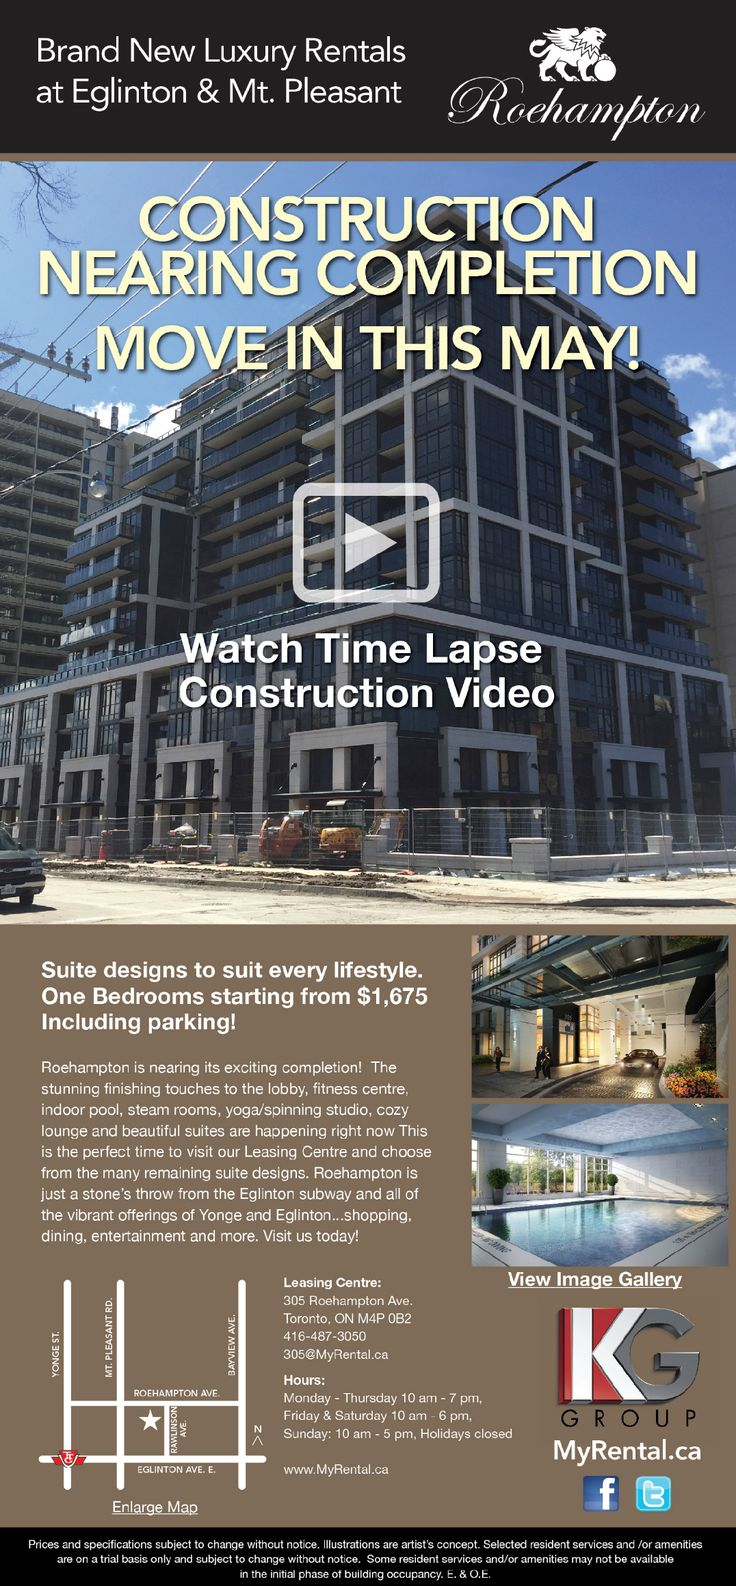 Our latest eblast just went live! #Construction is nearing completion and we are putting the #FinishingTouches on our #BeautifulAmenities and #suites! Visit us today for a tour, sign your #lease, and move in #May2015! Watch our construction #TimeLapseVideo here: https://www.youtube.com/watch?v=MbQHZYfiNzA&feature=share #luxuryrentals #Toronto #renting #rent #Roehampton #YongeAndEglinton